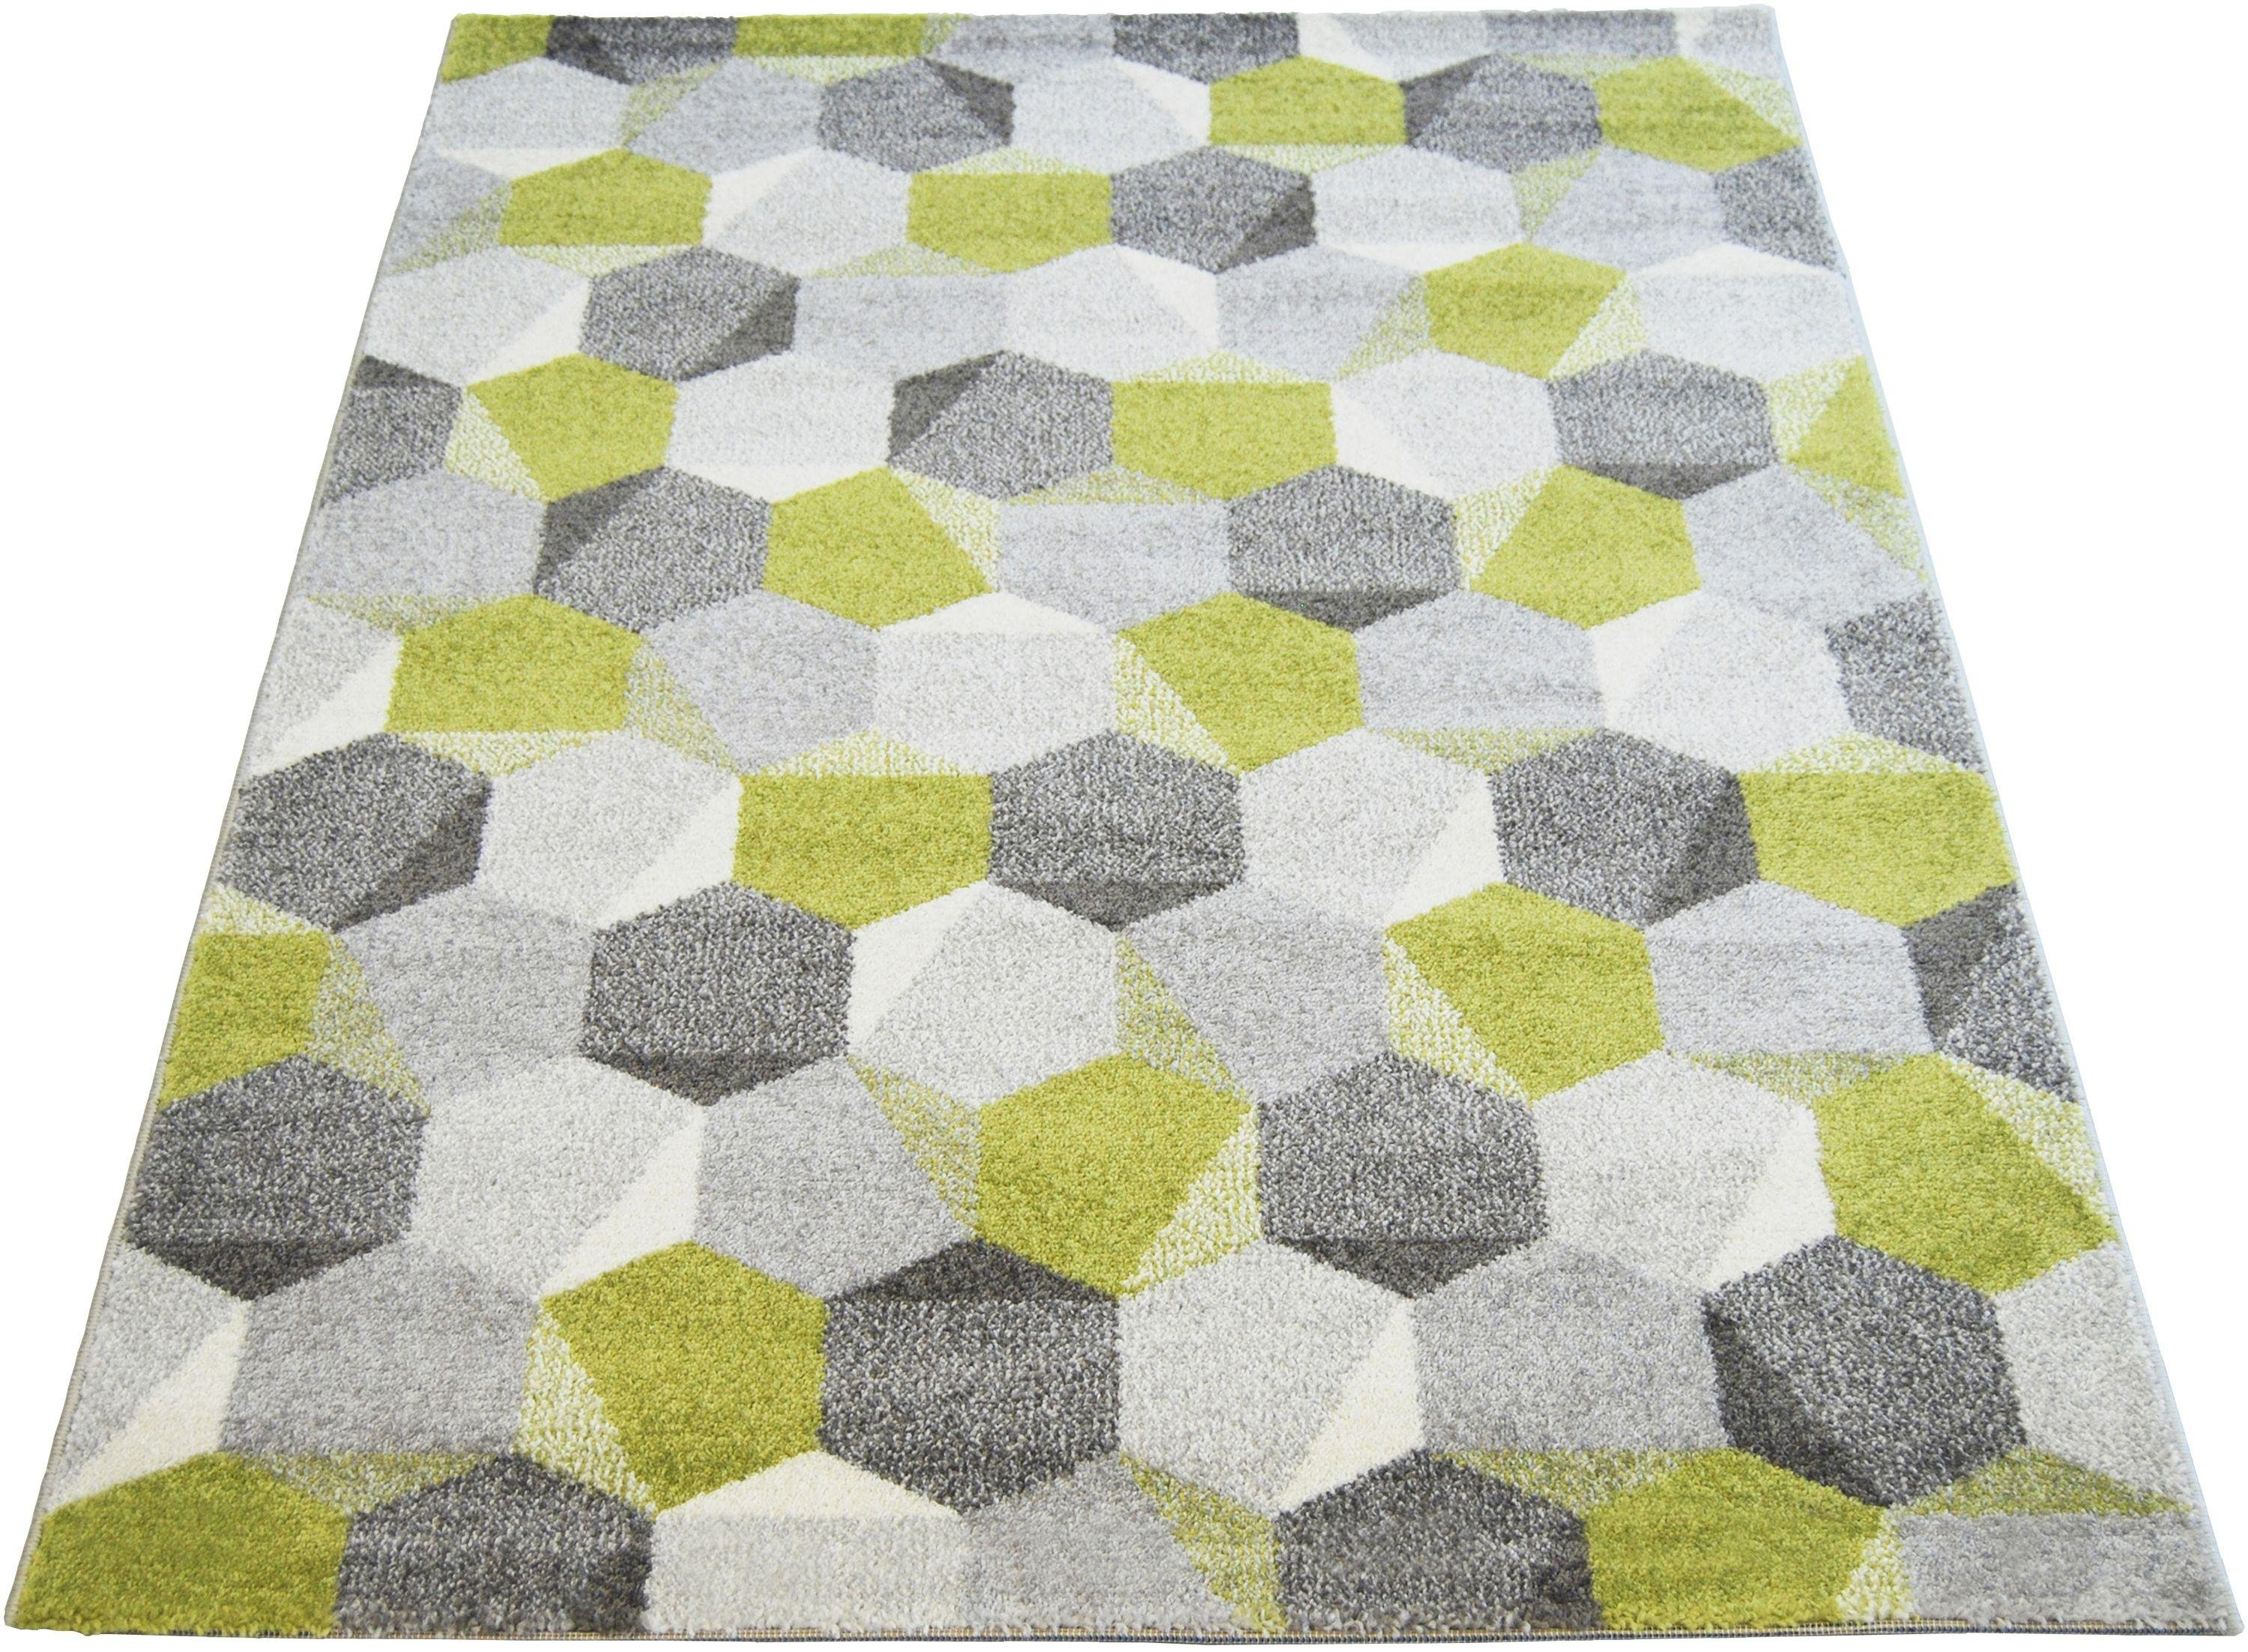 High Quality Monte Carlo Pixel Rug   80x150cm   Green